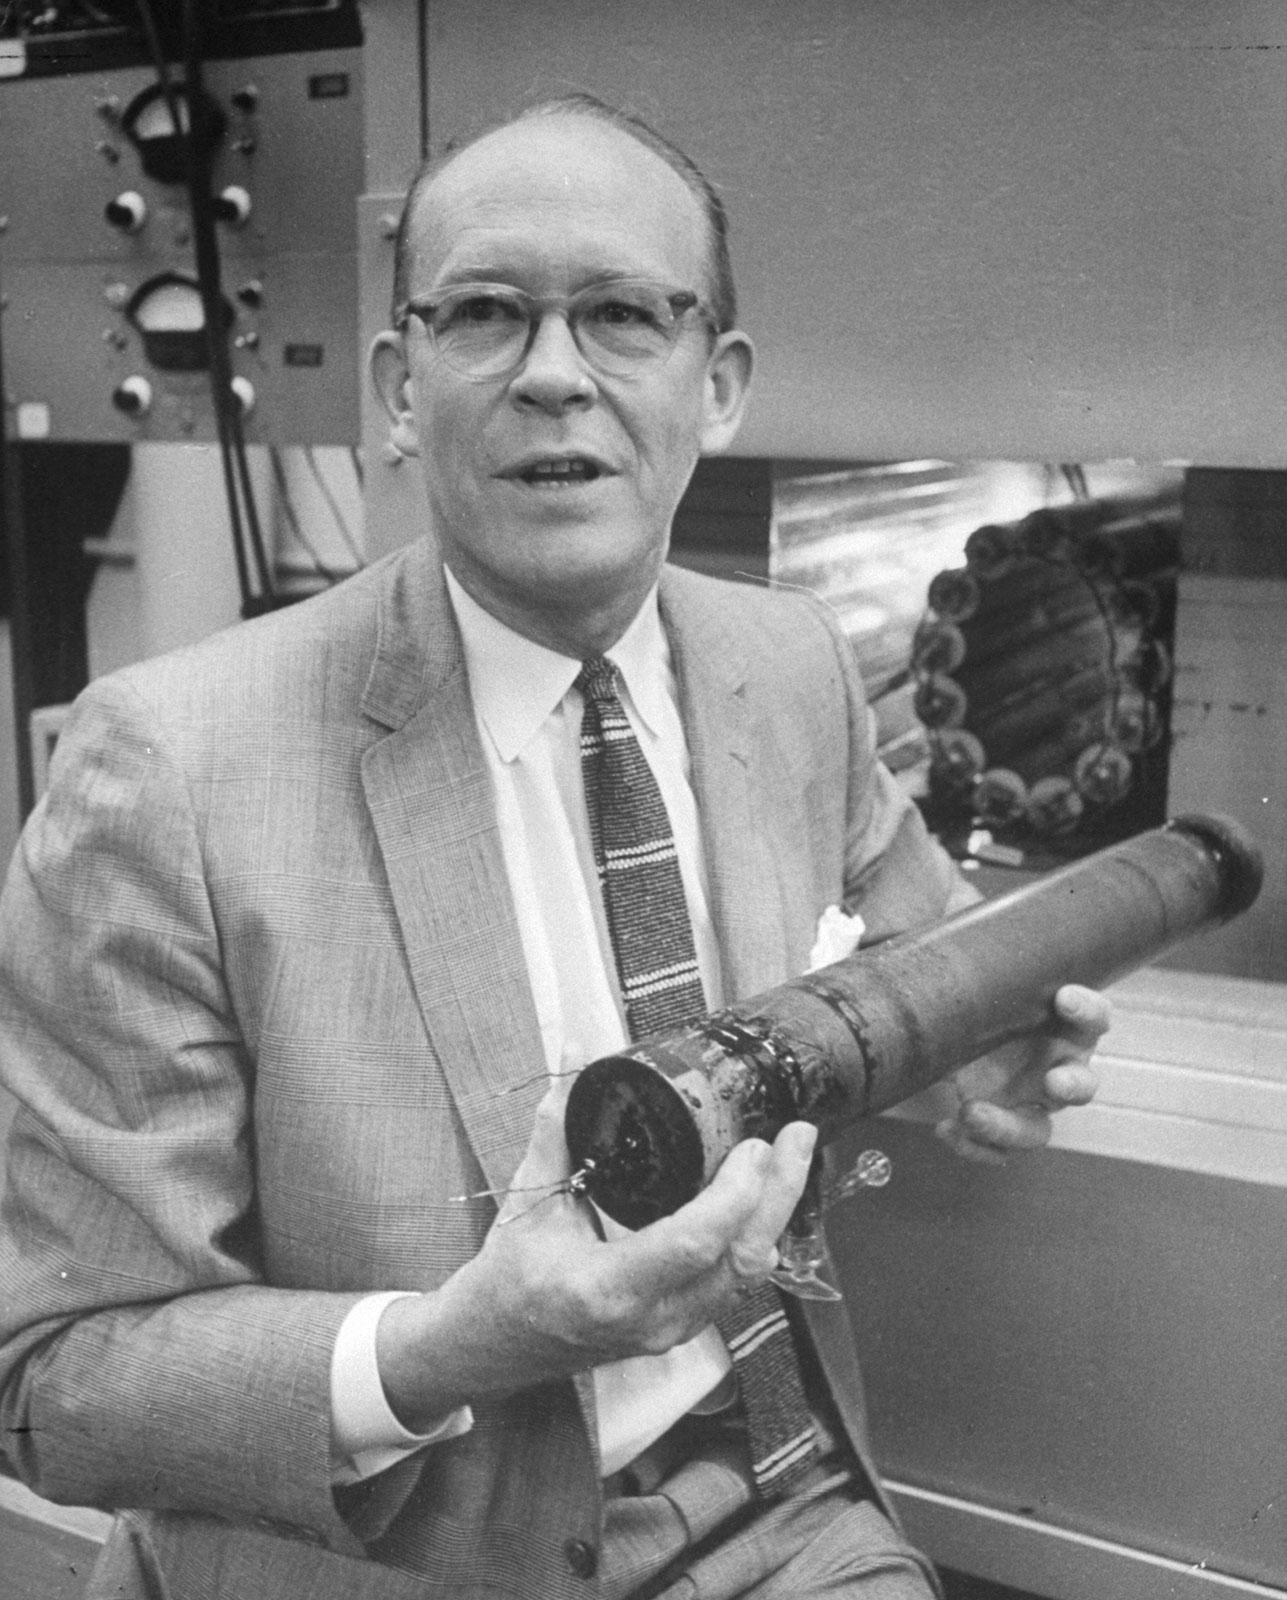 Willard libby radio carbon dating lab